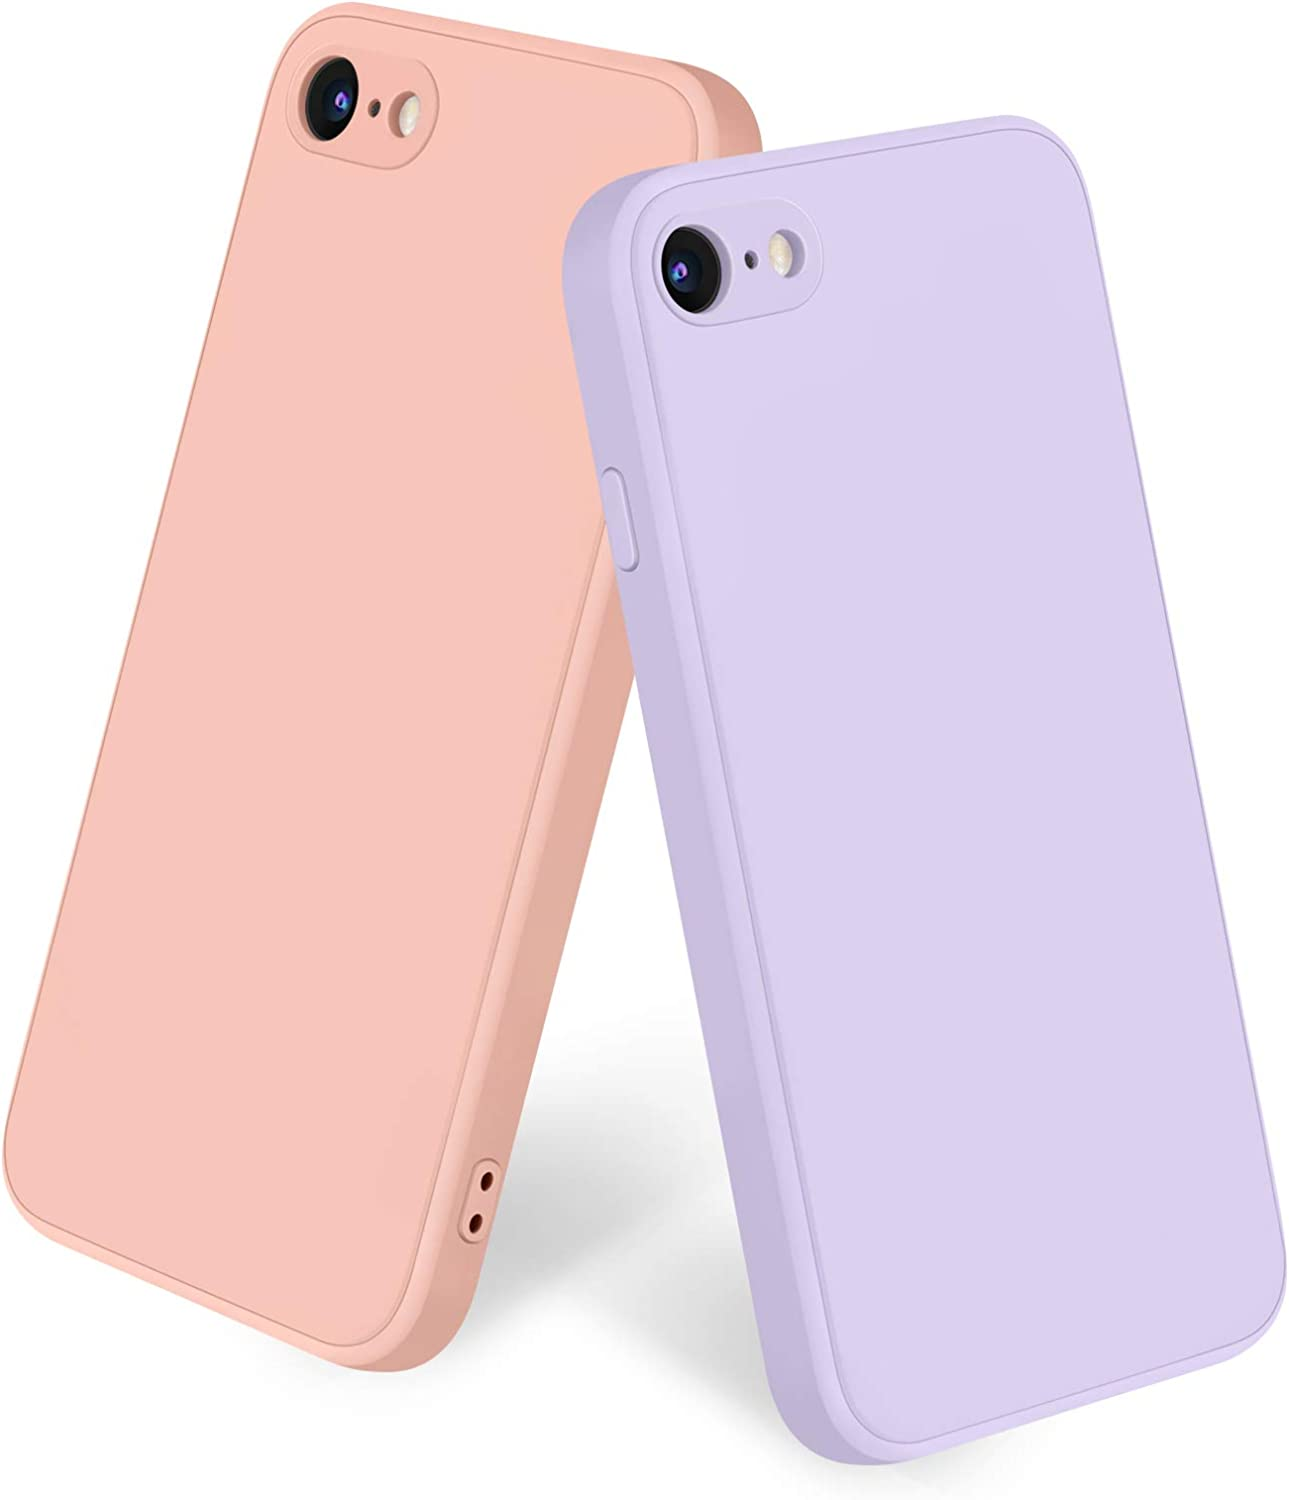 Amzpas [2 Pack] Compatible with iPhone SE 2020 Case, iPhone 8 7 Case Silicone Phone Case, Slim Shockproof Protective Cover Case with [Soft Microfiber Lining] (Pink + Grass Purple)